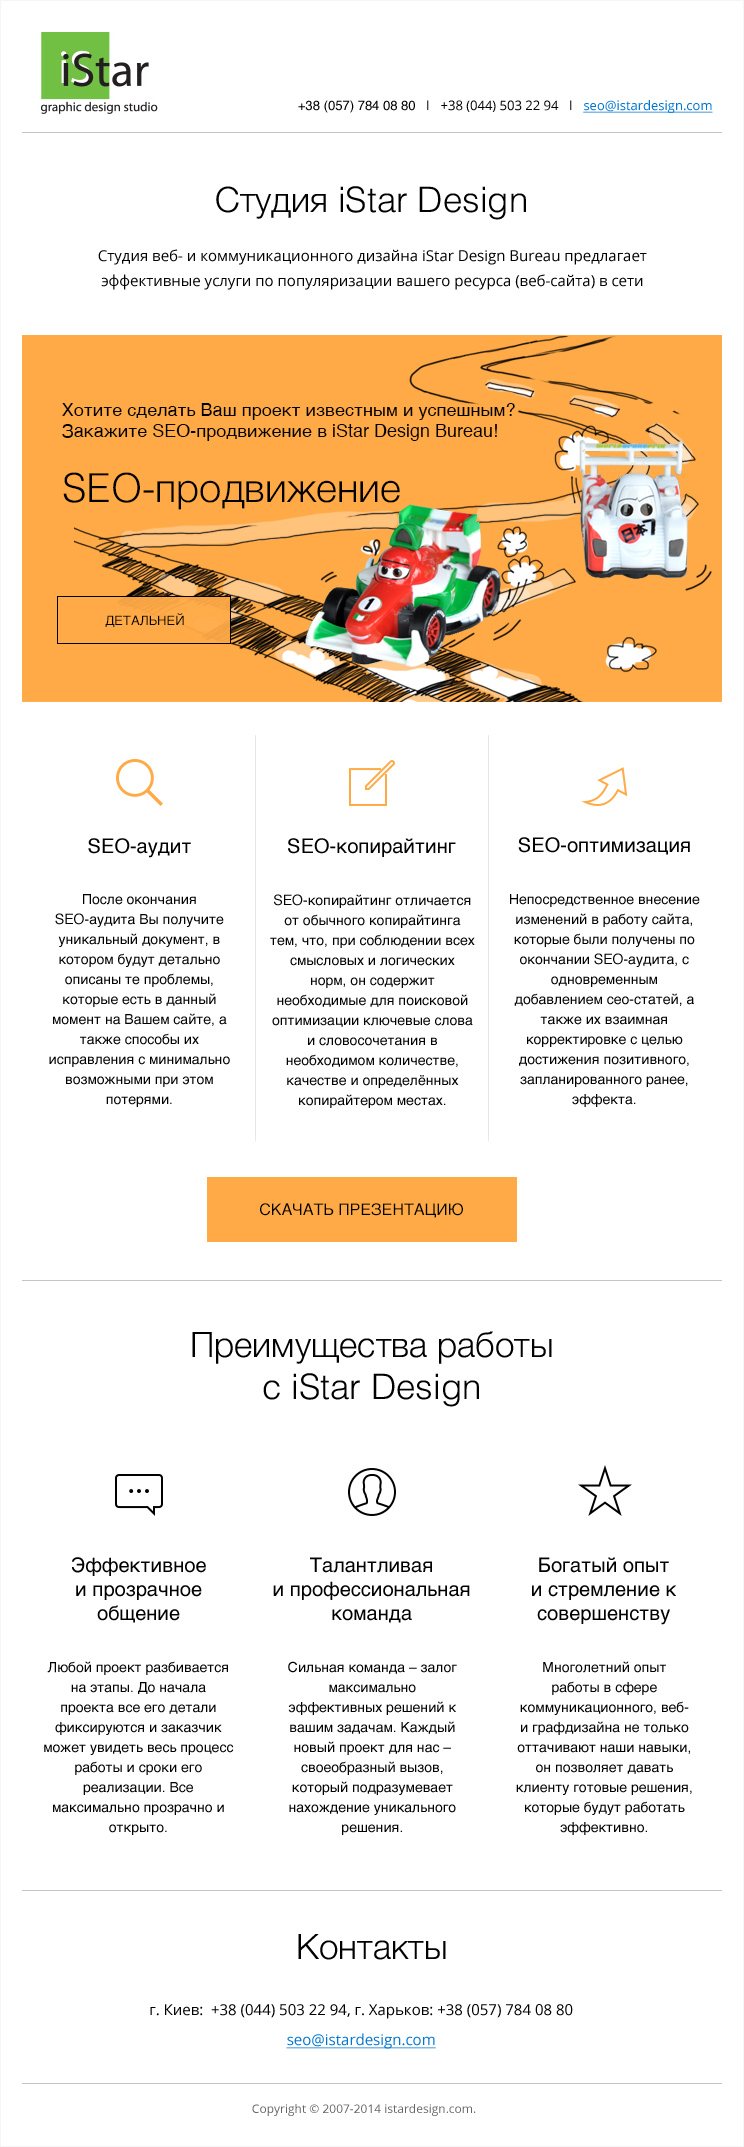 Commercial email for iStar Design